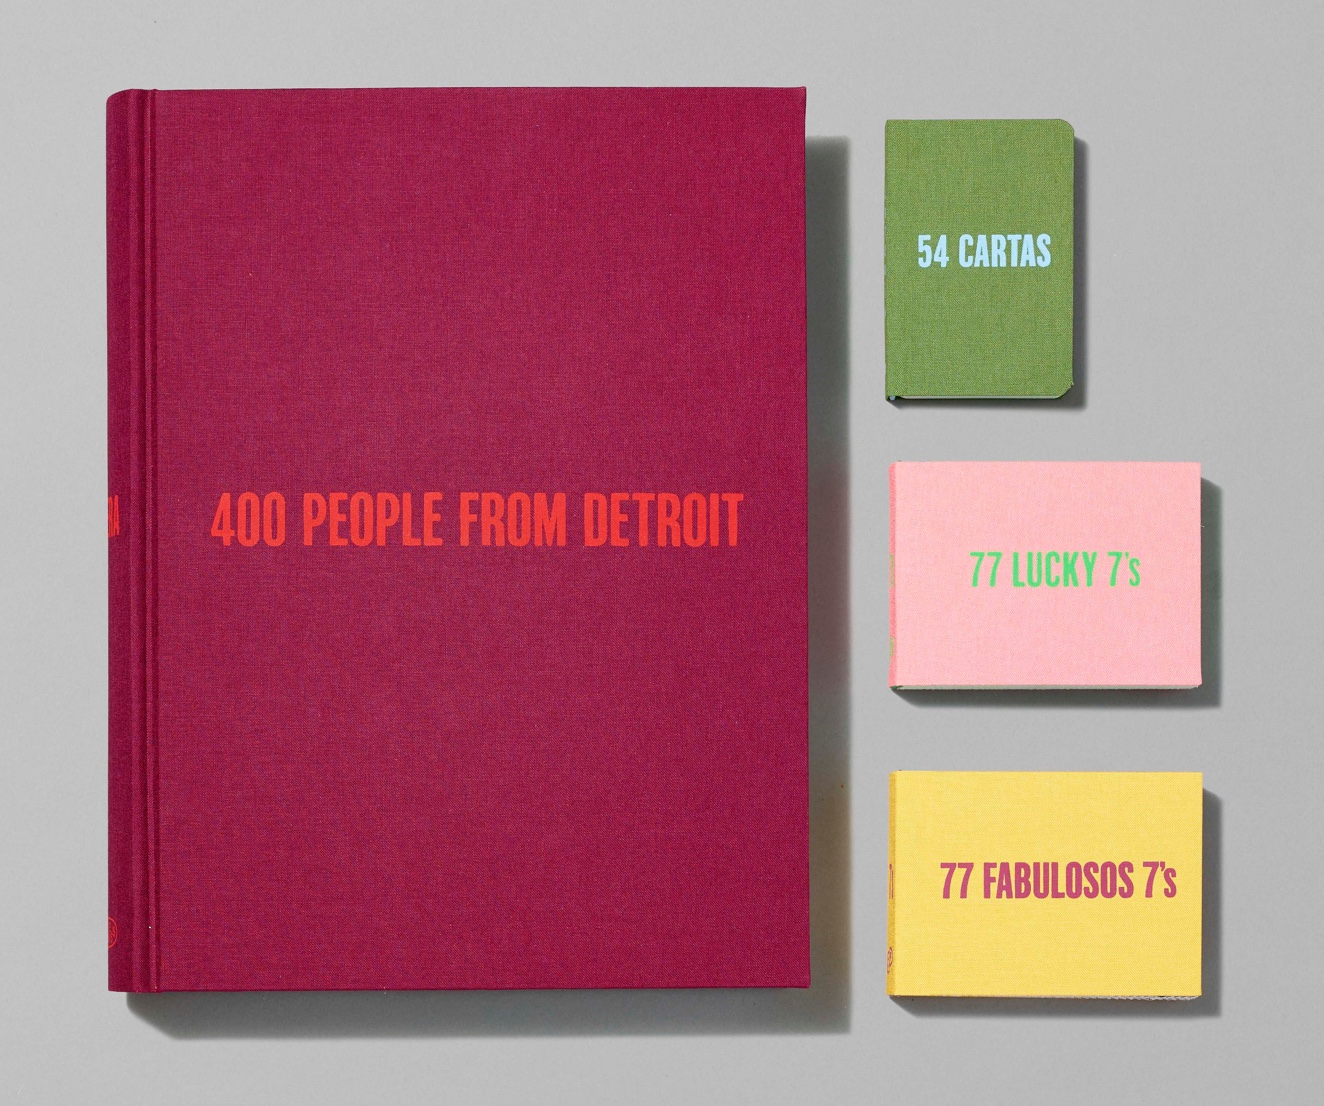 Four books of varying colors and sizes laid out in an artful grid